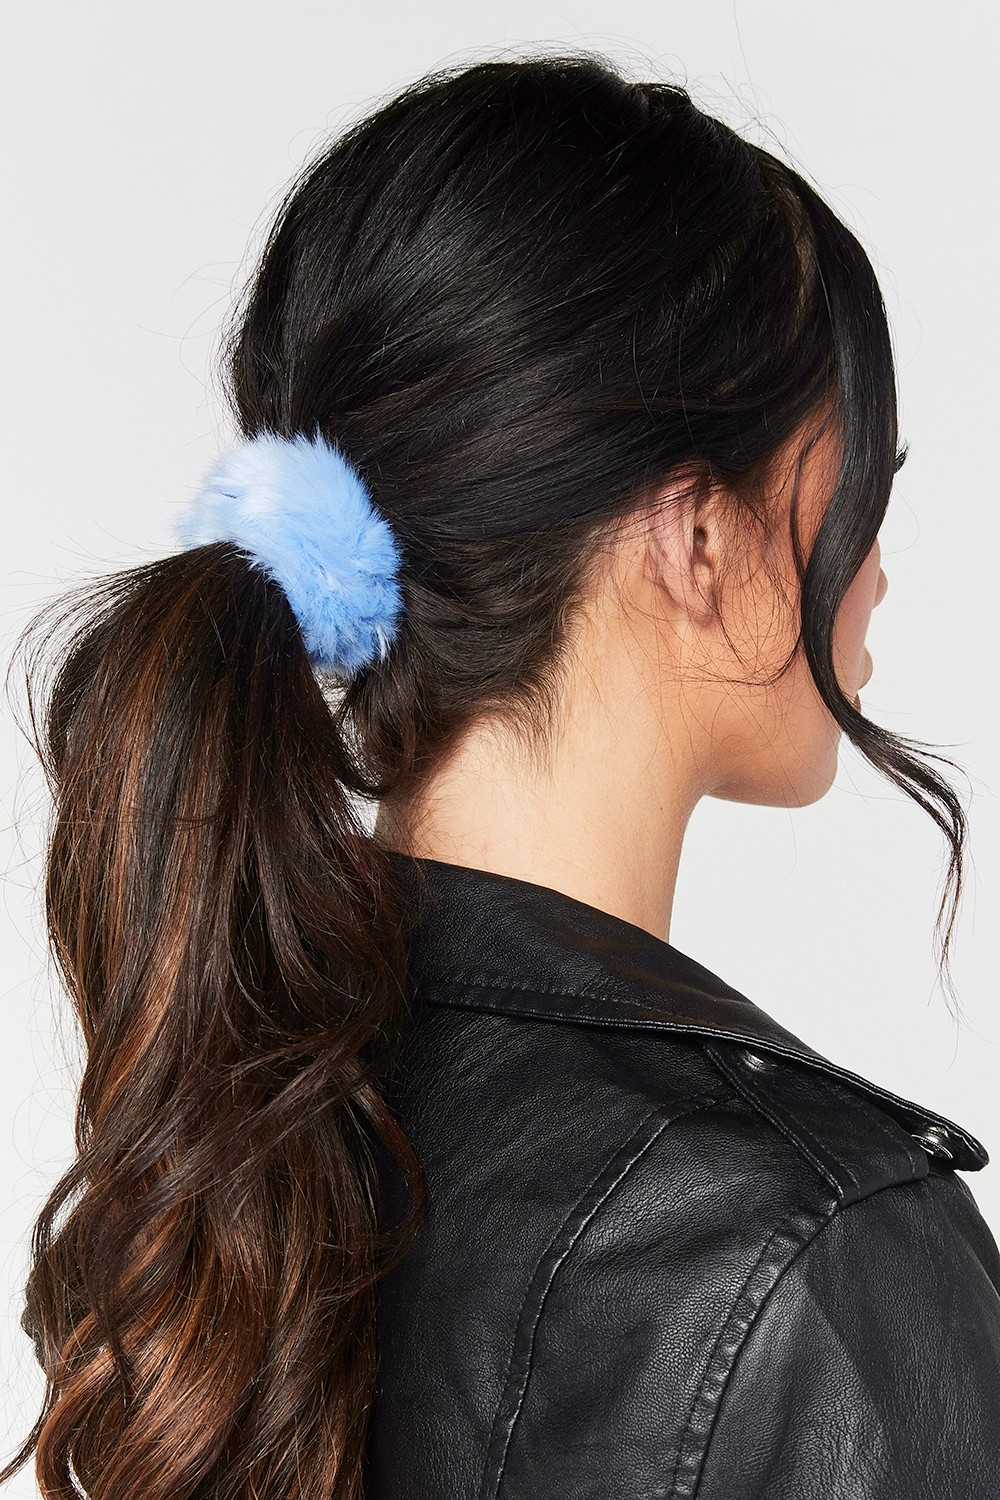 how-to-style-hair-accessories-scrunchies-hairstyles-ways-to-wear-ponytail-blue-fuzzy-low.jpg